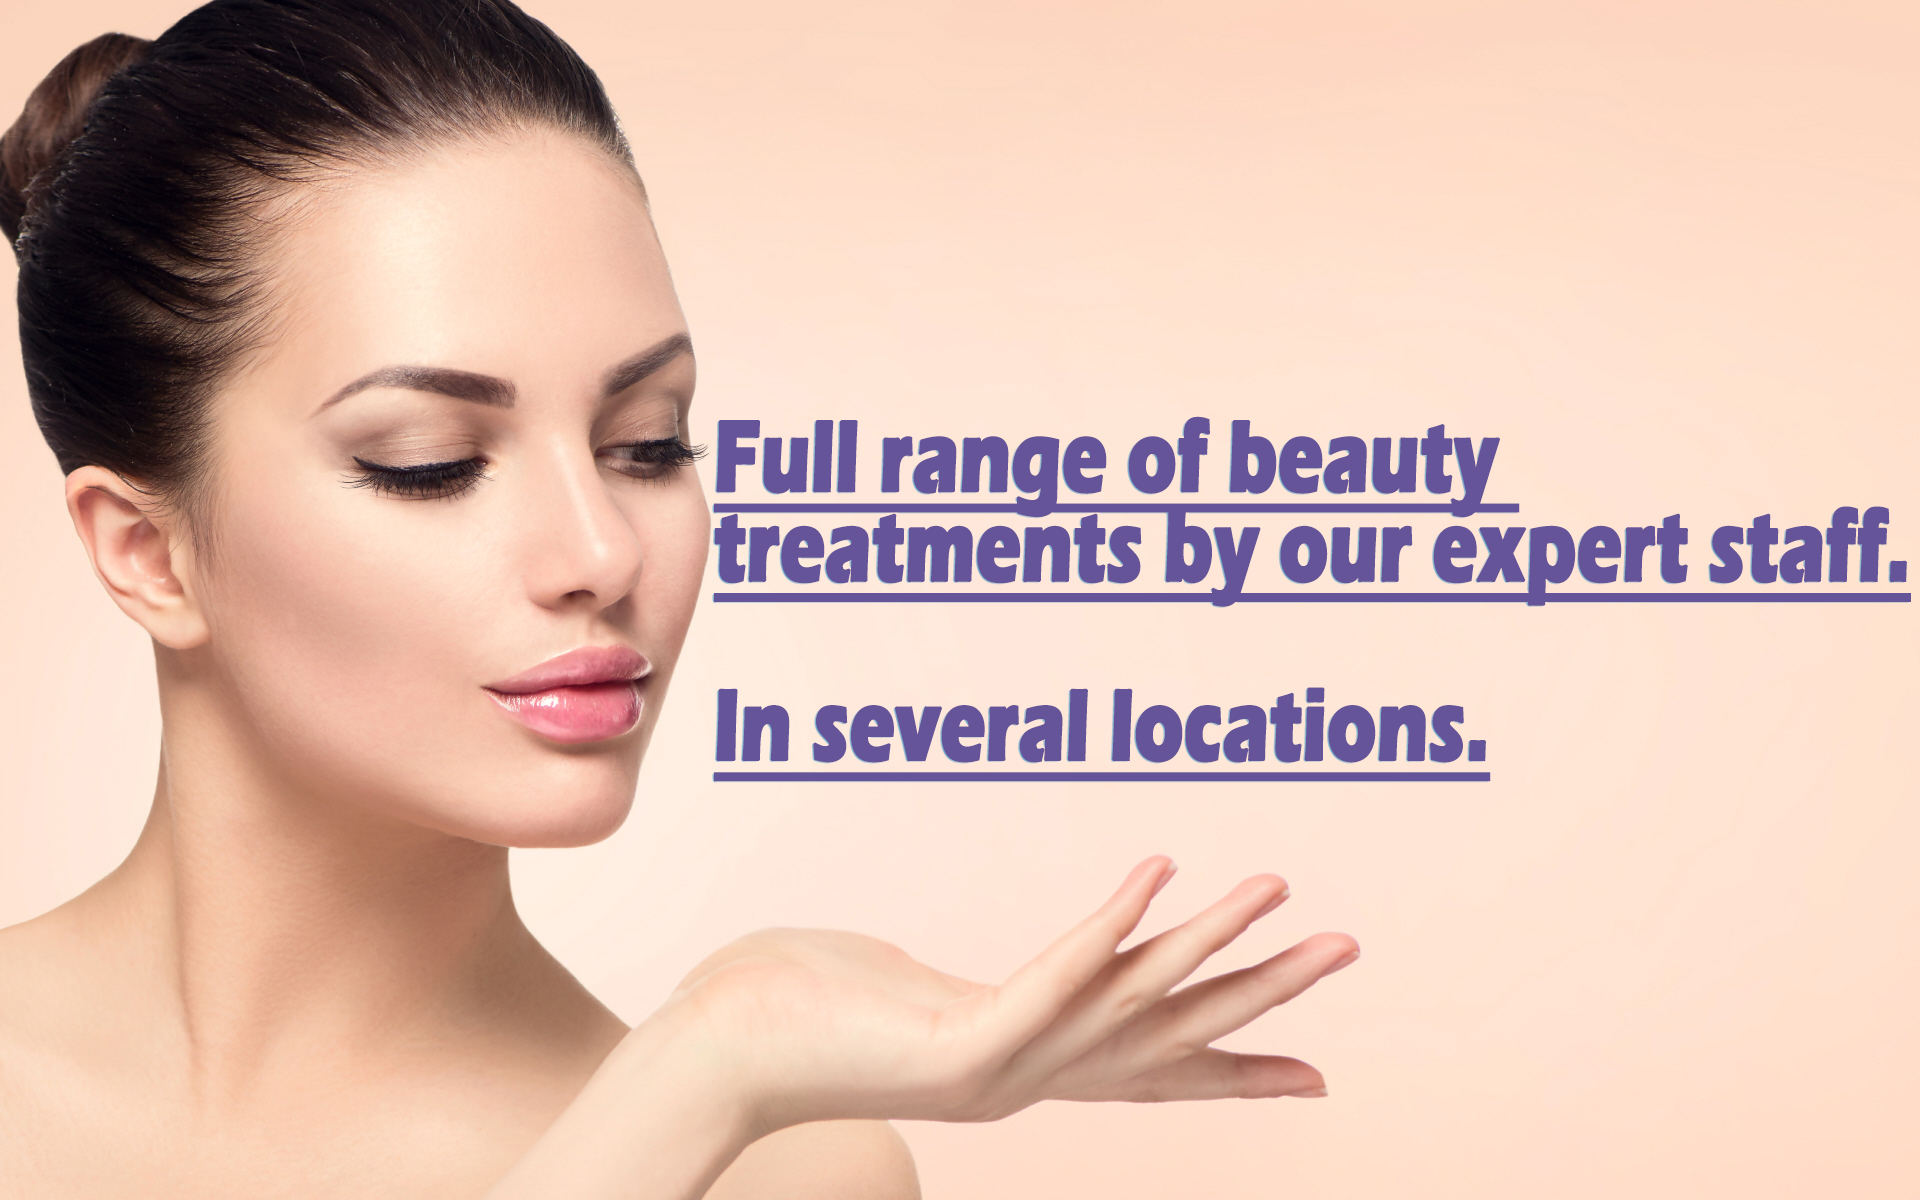 Full beauty services from Unique Beauty 4u Salons